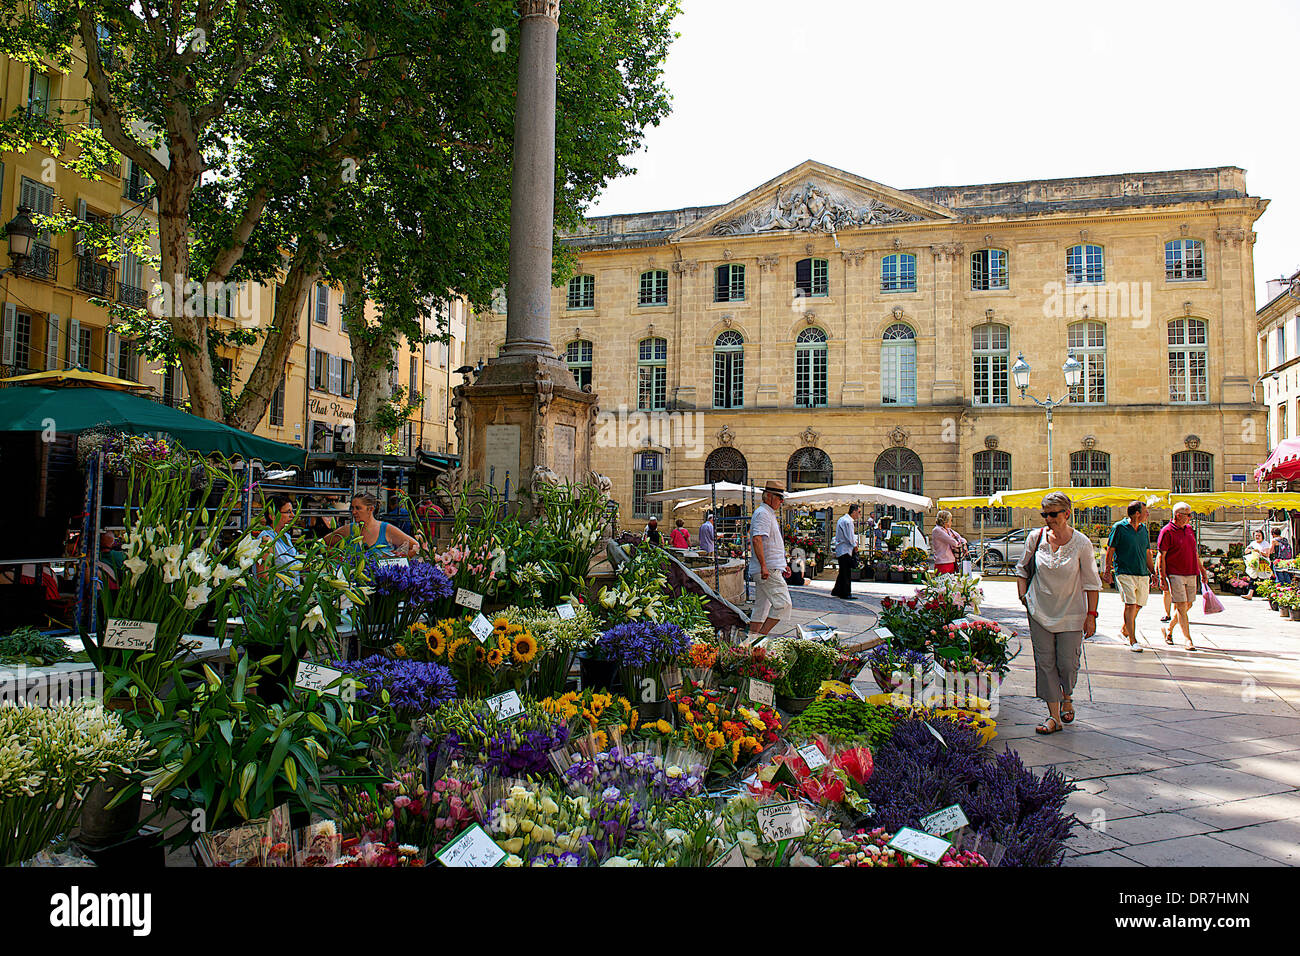 flower market aix en provence france stock photo royalty free image 65935765 alamy. Black Bedroom Furniture Sets. Home Design Ideas